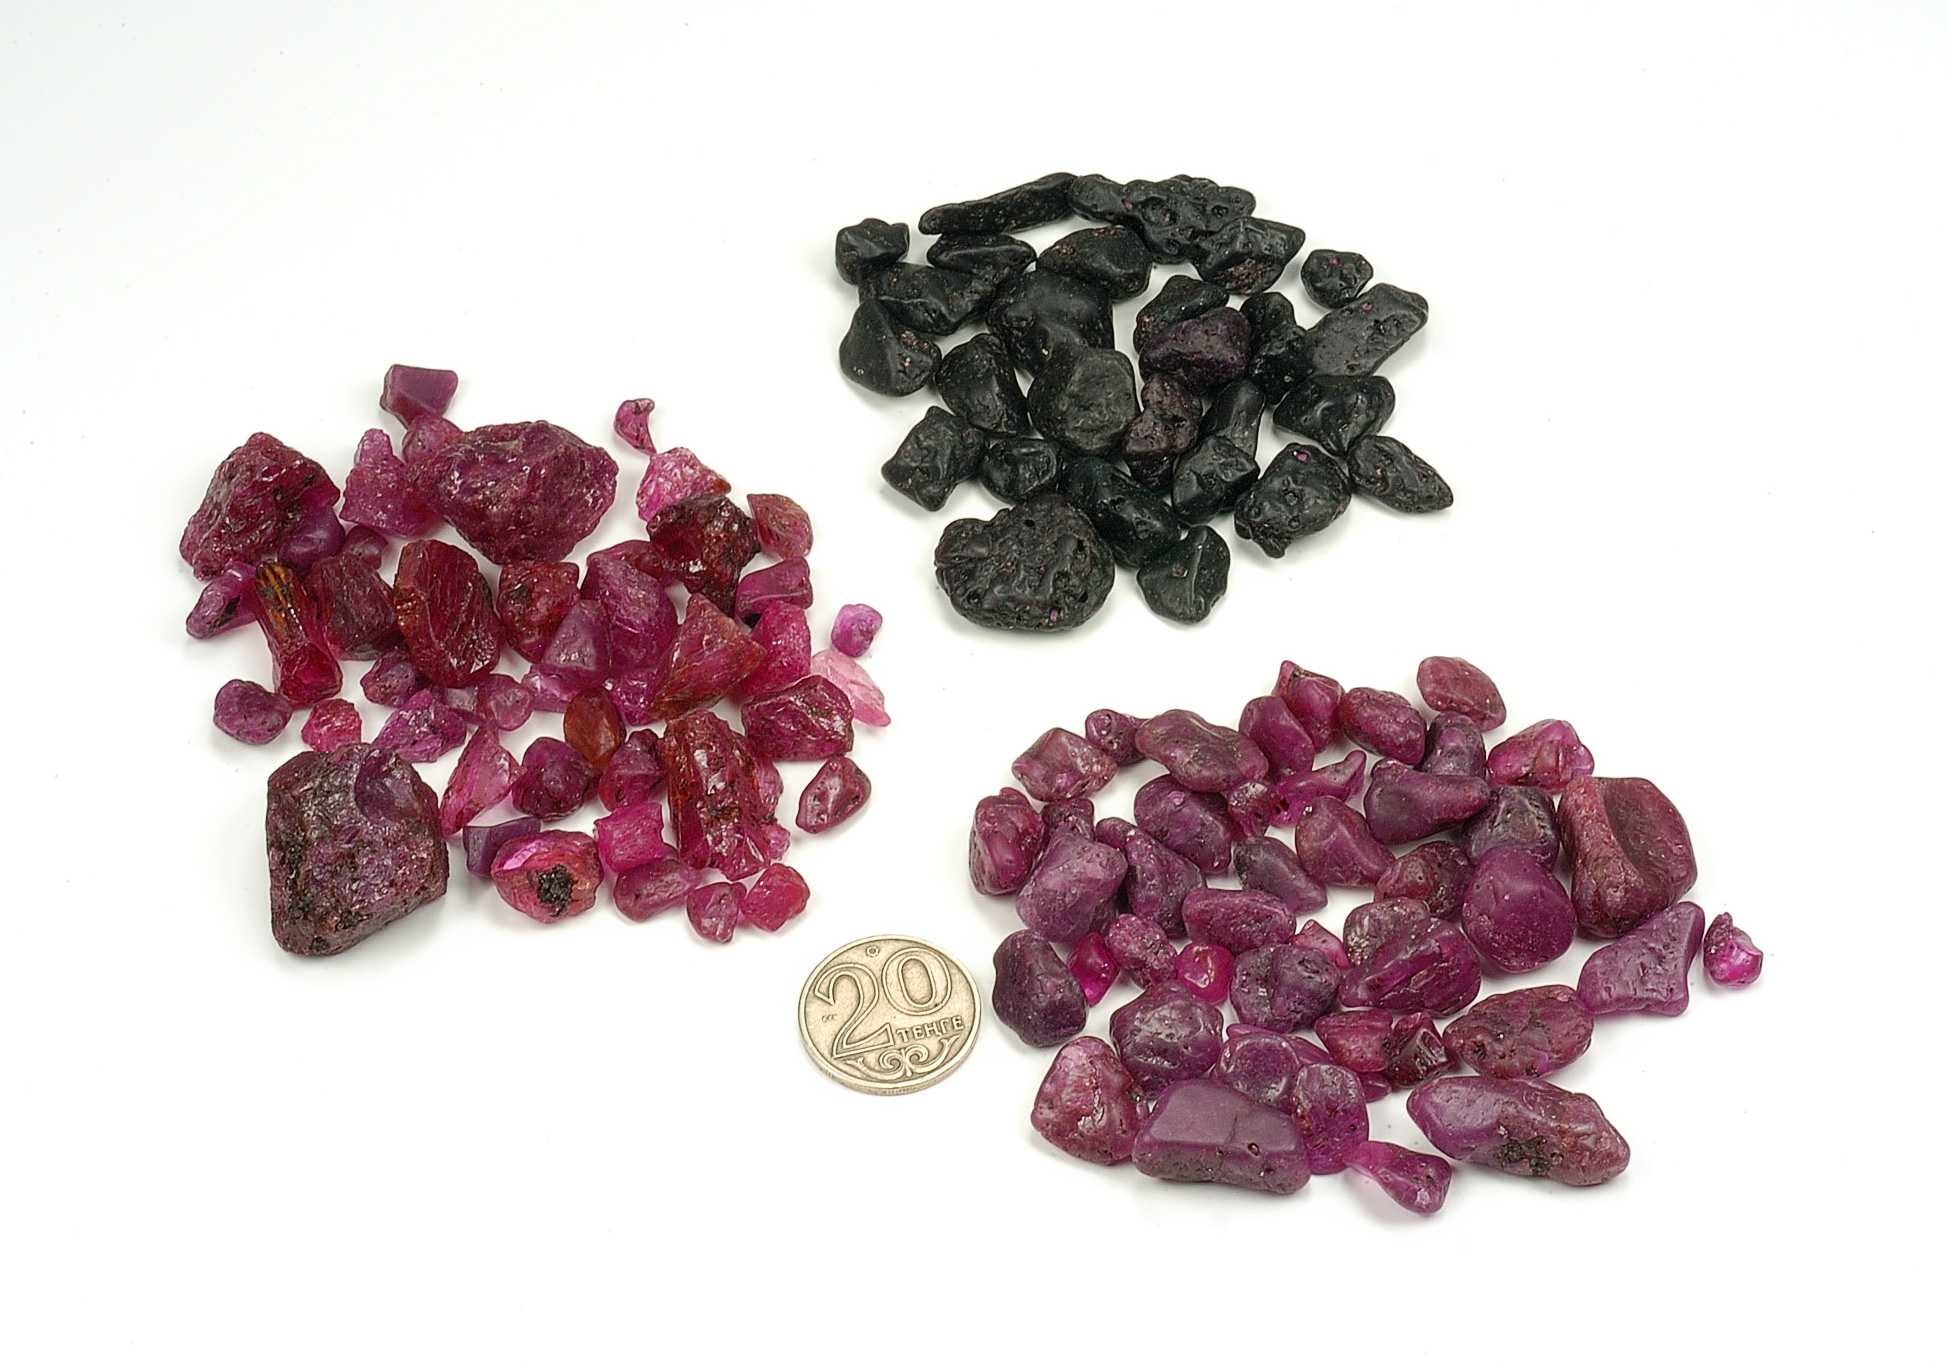 Ruby & Garnet from Tajikistan